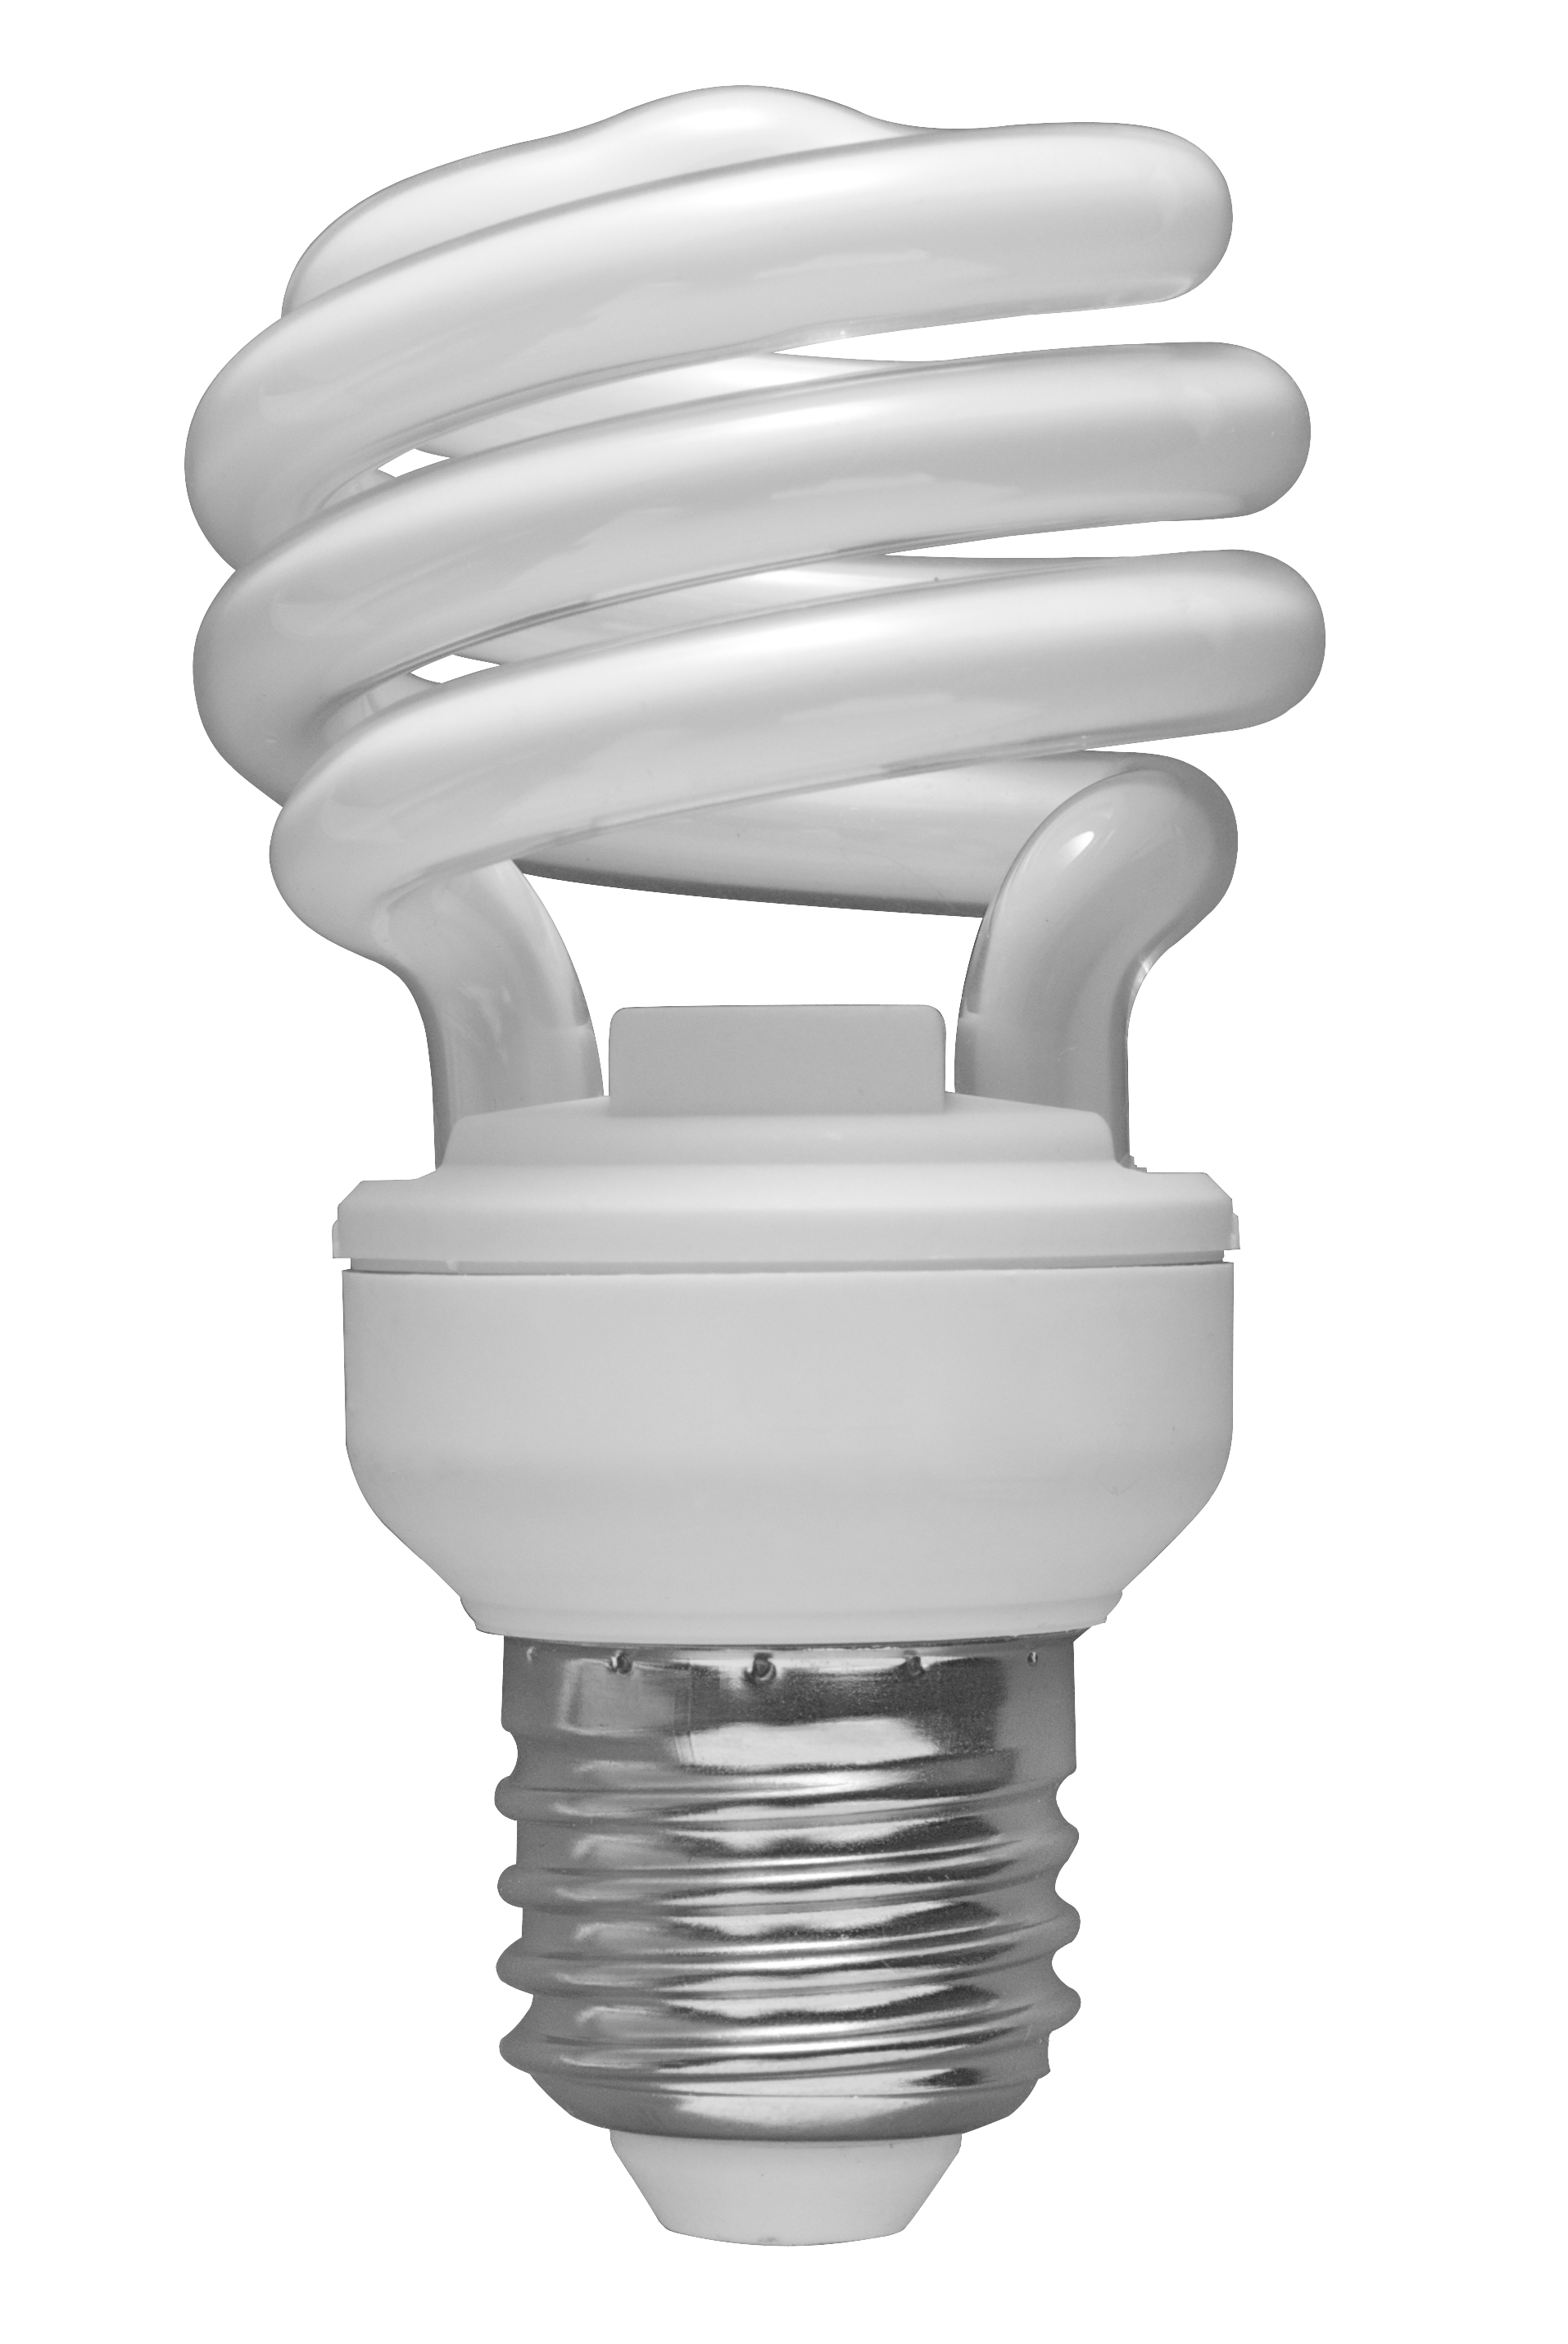 Compact Flourescent Light Bulbs And Mercury Baltimore Commercial Electric Services Good News